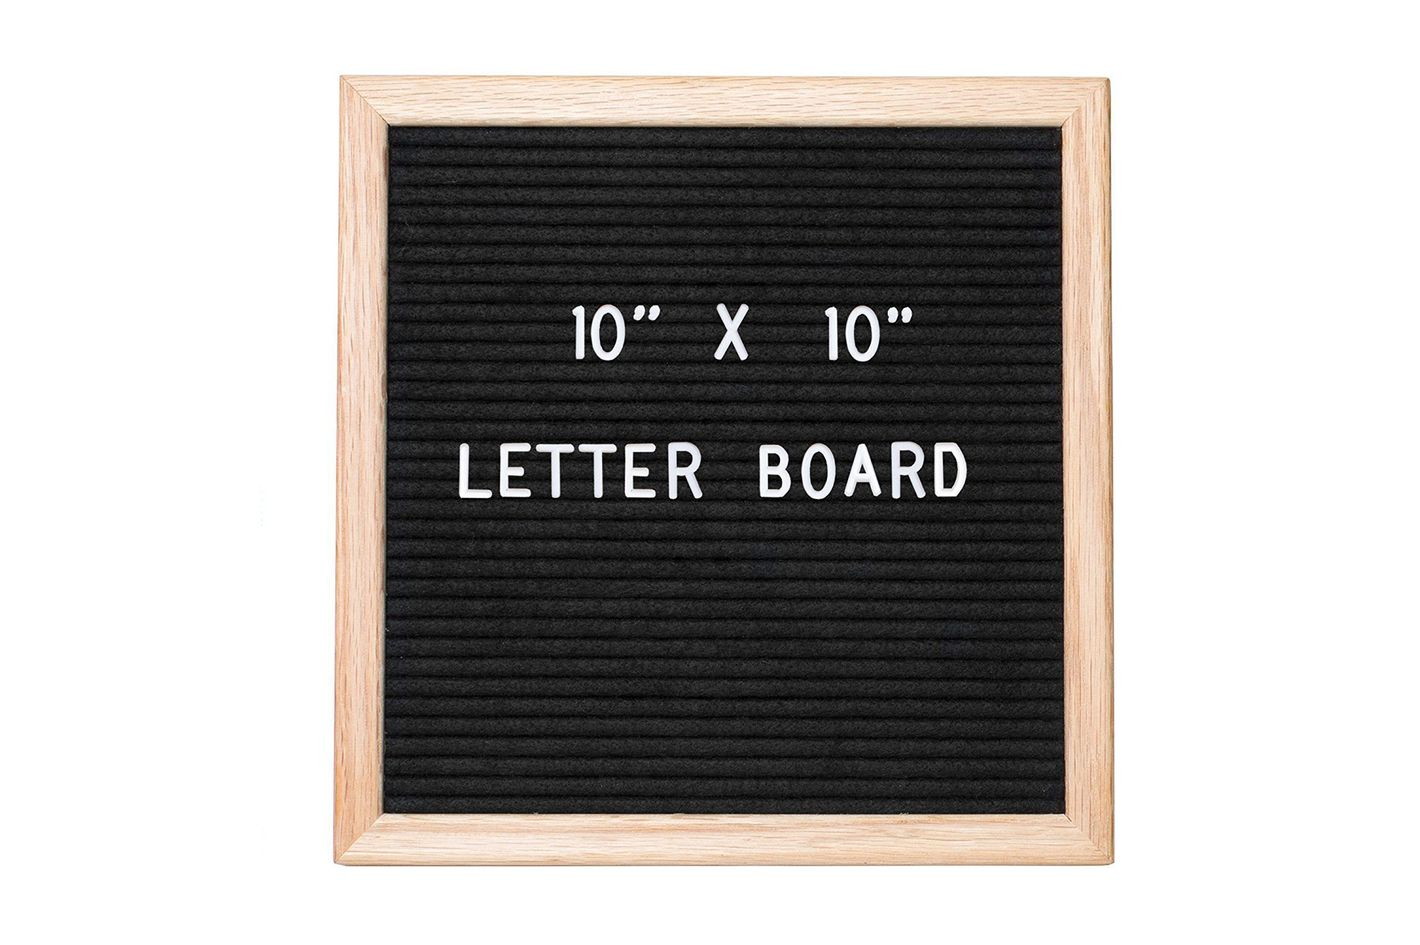 Ilyapa Felt Letter Board With 308 Letters, Numbers & Symbols — 10x10 Inch Changeable Wooden Message Board Sign